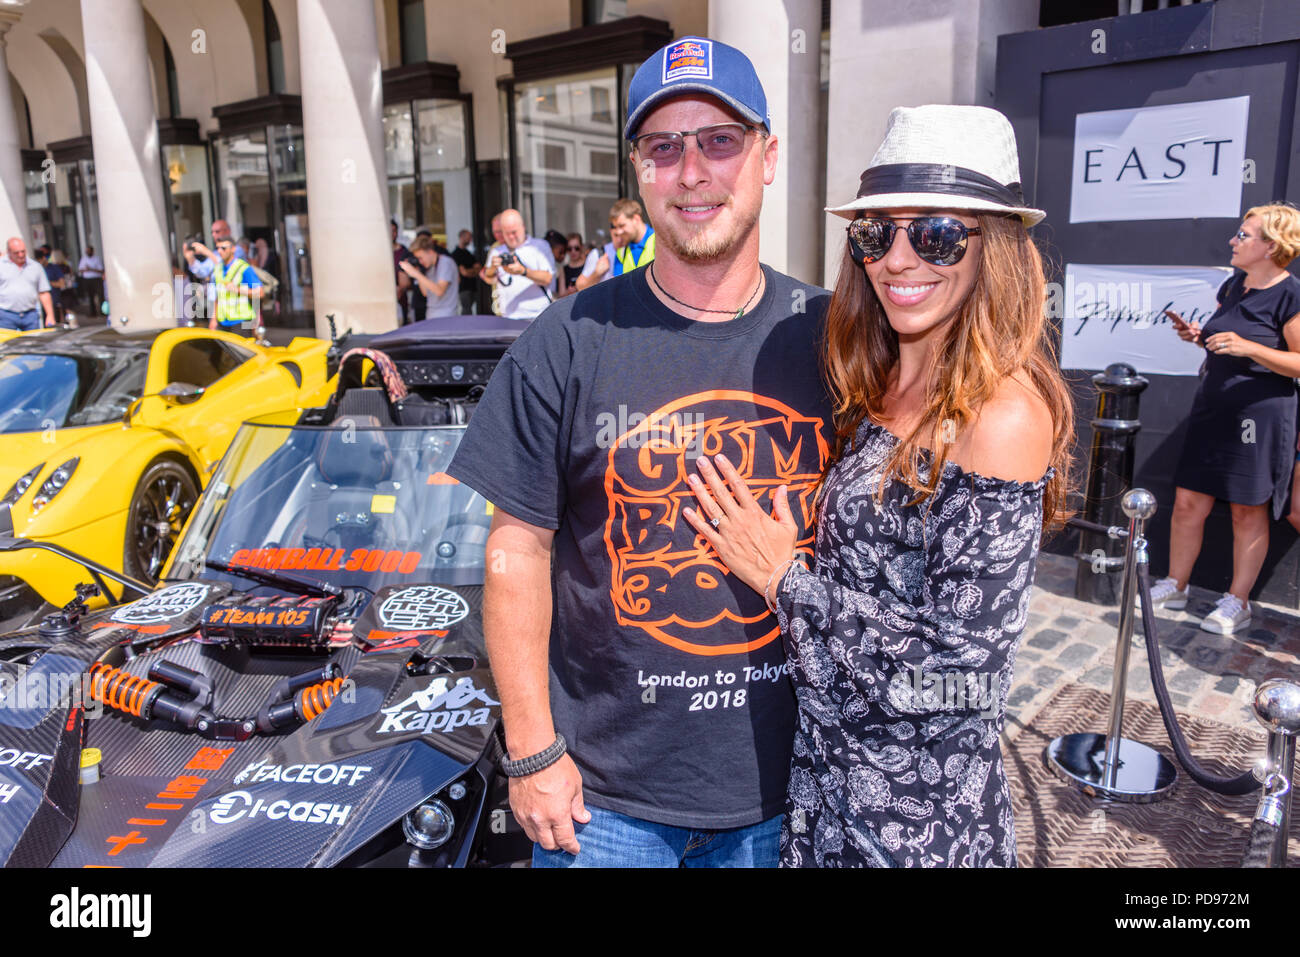 Melissa Owings and Travis Rasmussen, entrants in the Gumball 3000 rally with their KTM X-Bow GT, only a few days before they plan to wed. - Stock Image